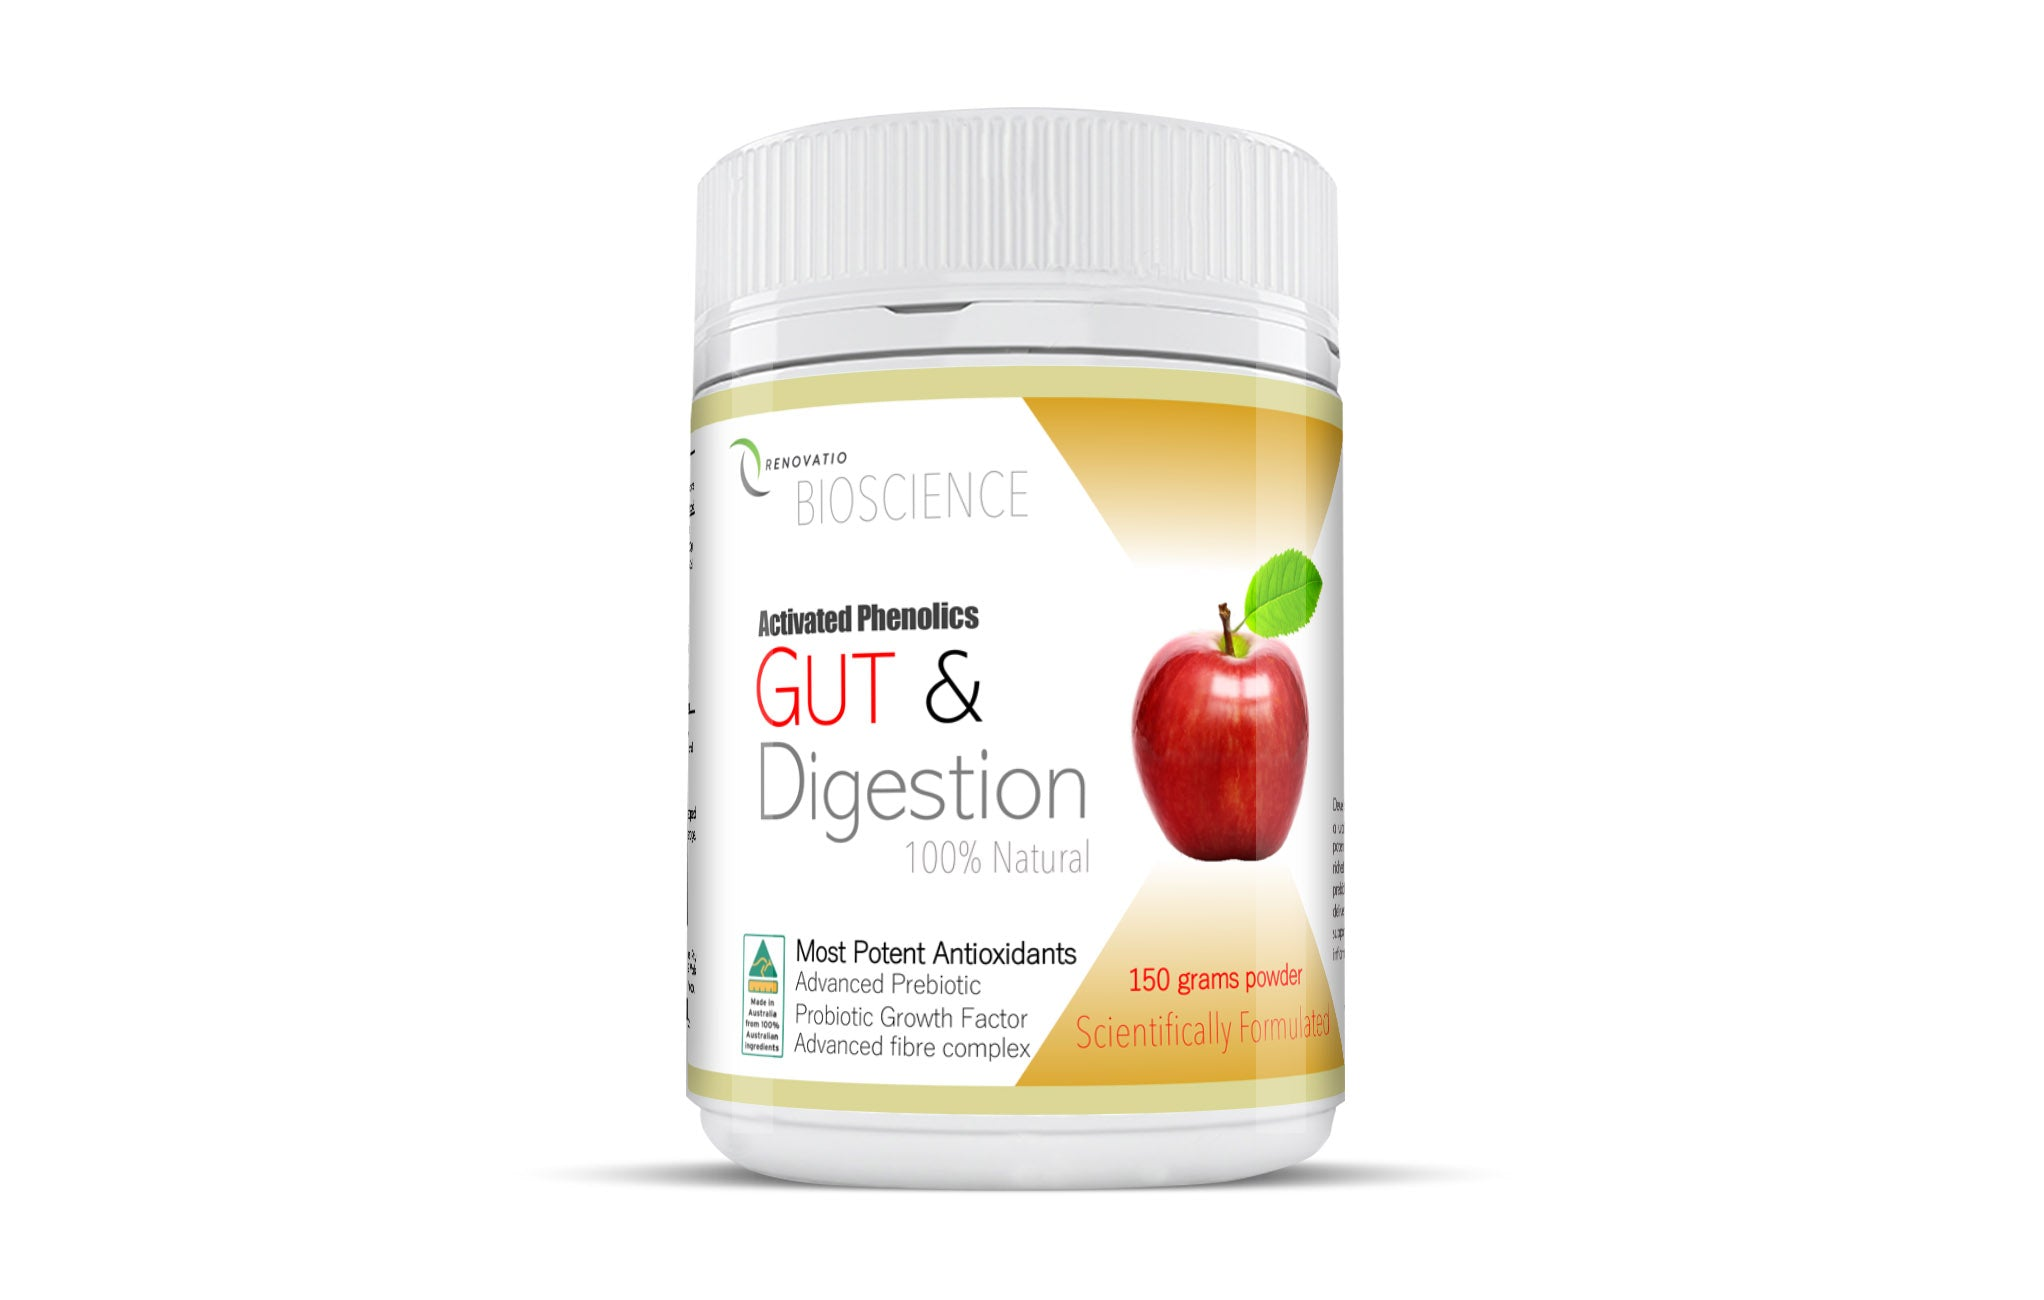 Activated Phenolics Gut and Digestion with Advanced Prebiotic BUY ONE GET ONE FREE